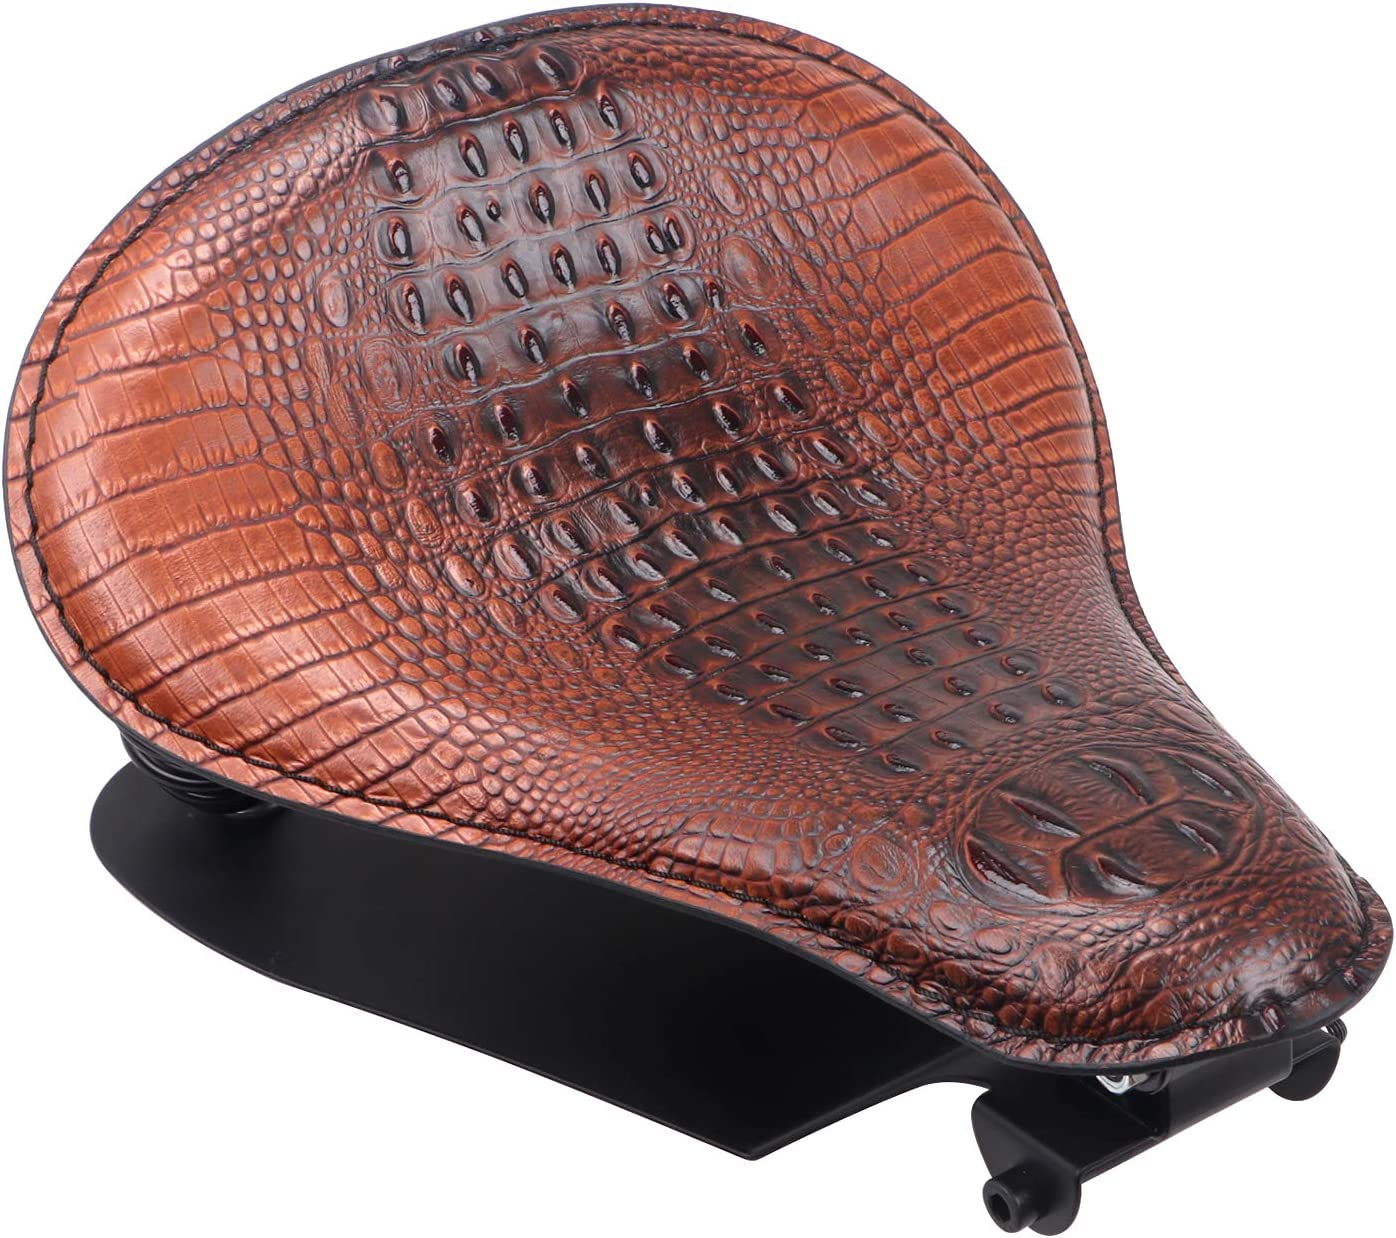 Black 13 Motorcycle Leather Solo Driver Seat Cushion Pad with Spring Bracket Base Mounting for Harley Davidson Sportster Softail Dyna Chopper Bobber